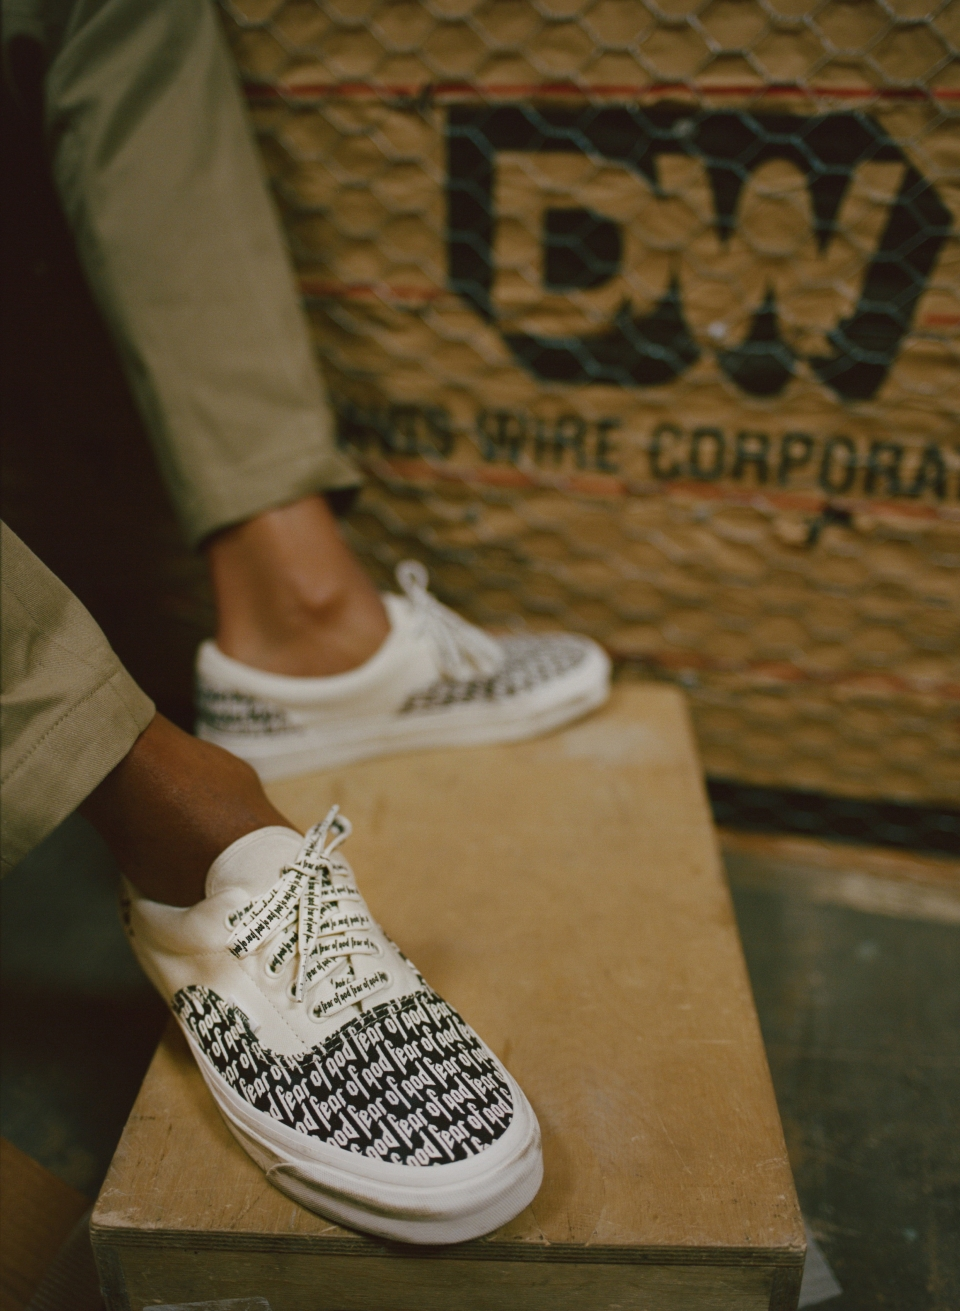 bbe1d8e7ad There are three footwear models in the latest Vans X F.O.G. – Fear of God  collection